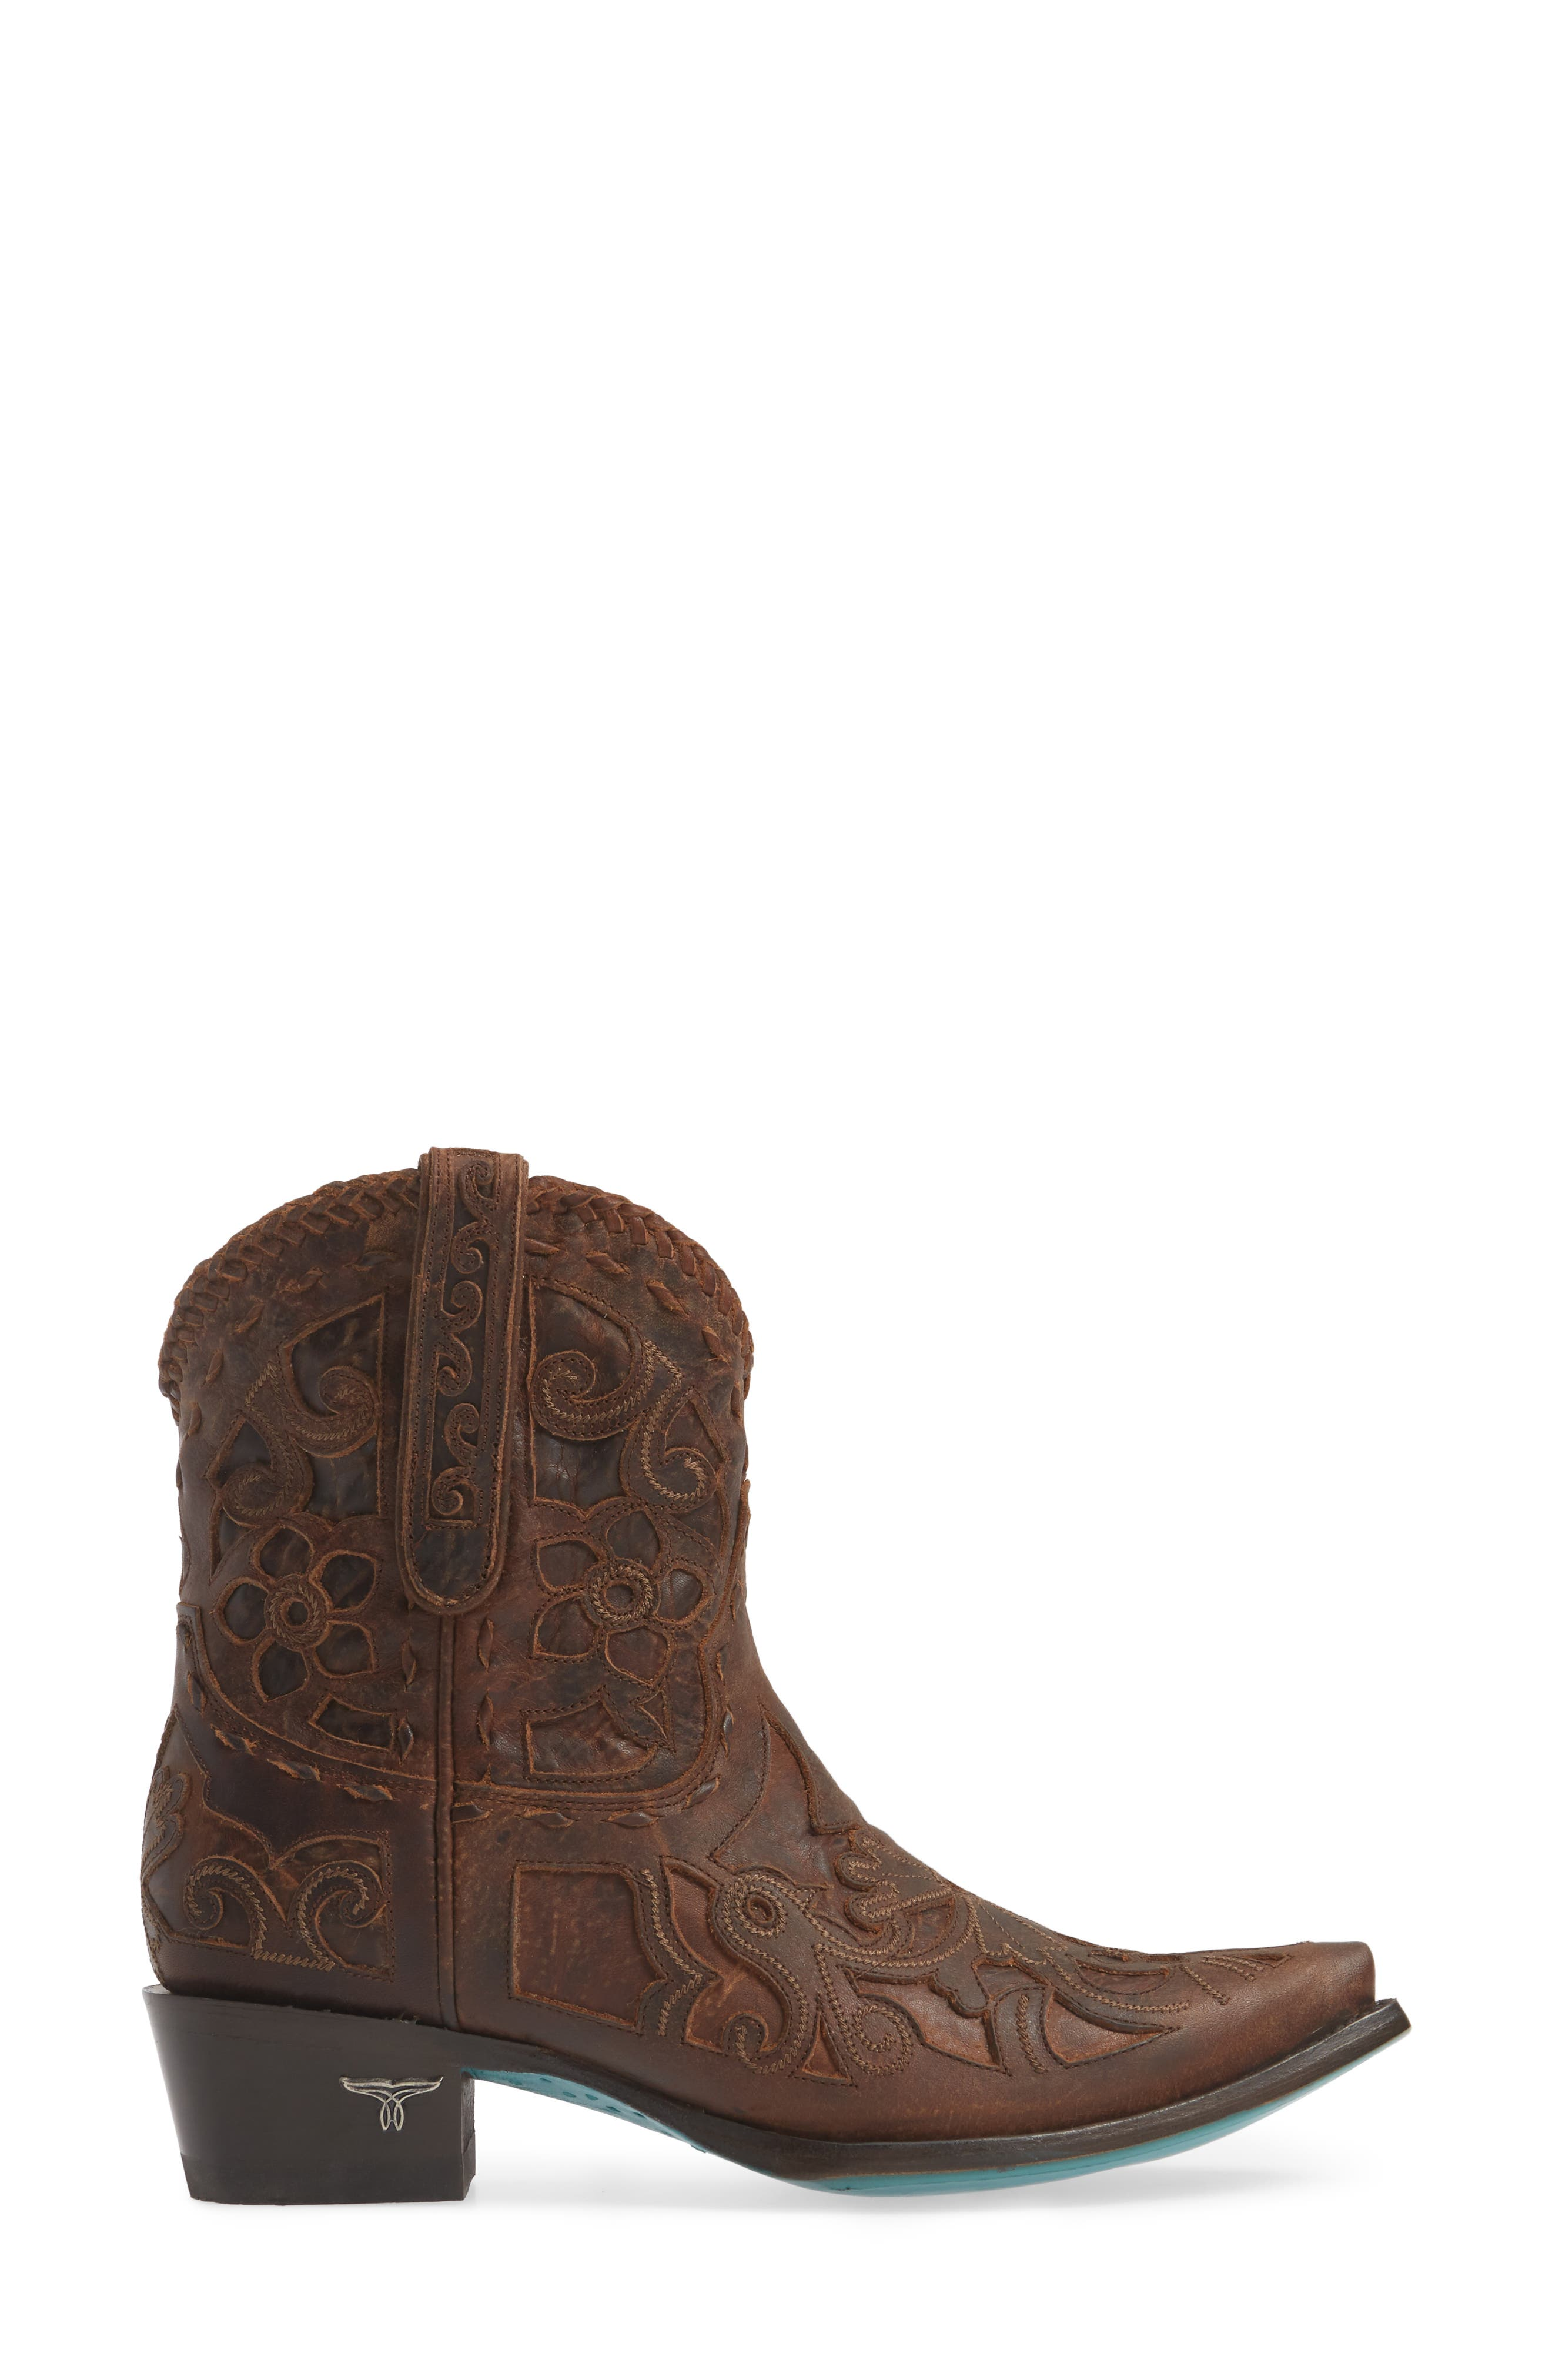 LANE BOOTS,                             Robin Western Boot,                             Alternate thumbnail 3, color,                             DARK BROWN LEATHER